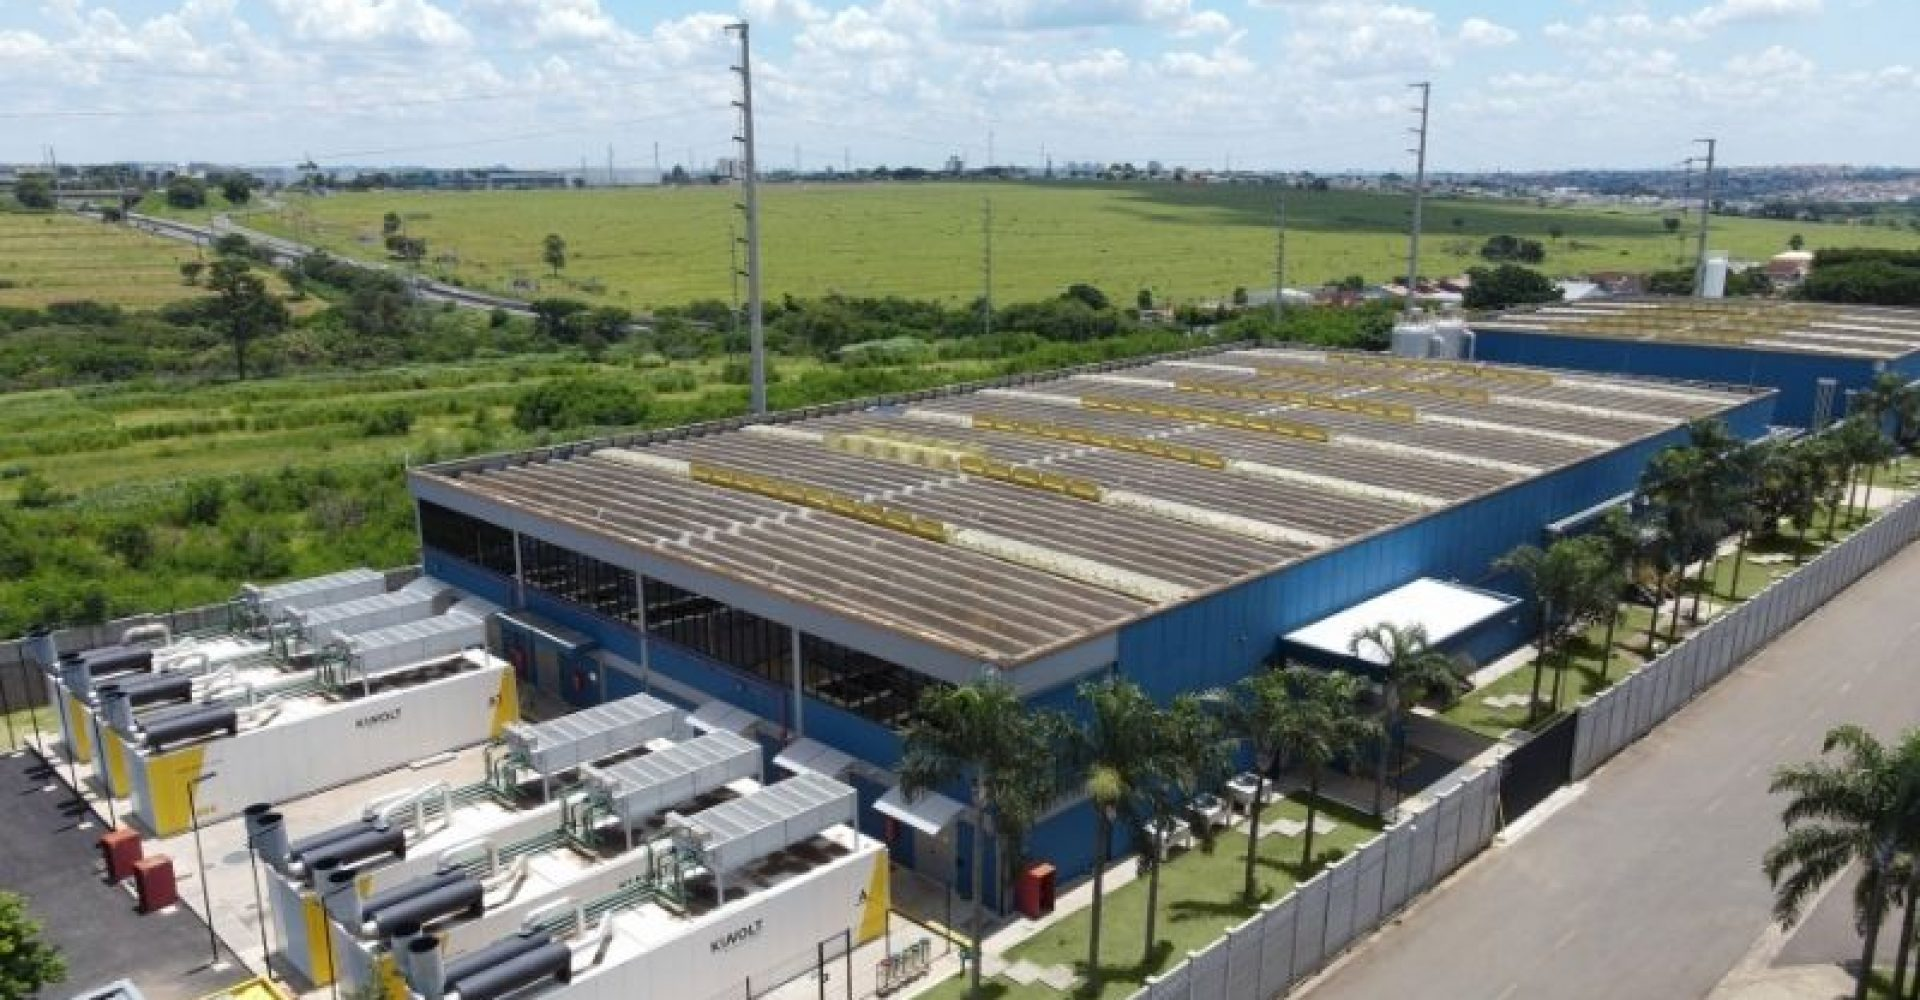 Ascenty kicks off the construction of five more data centers in Brazil